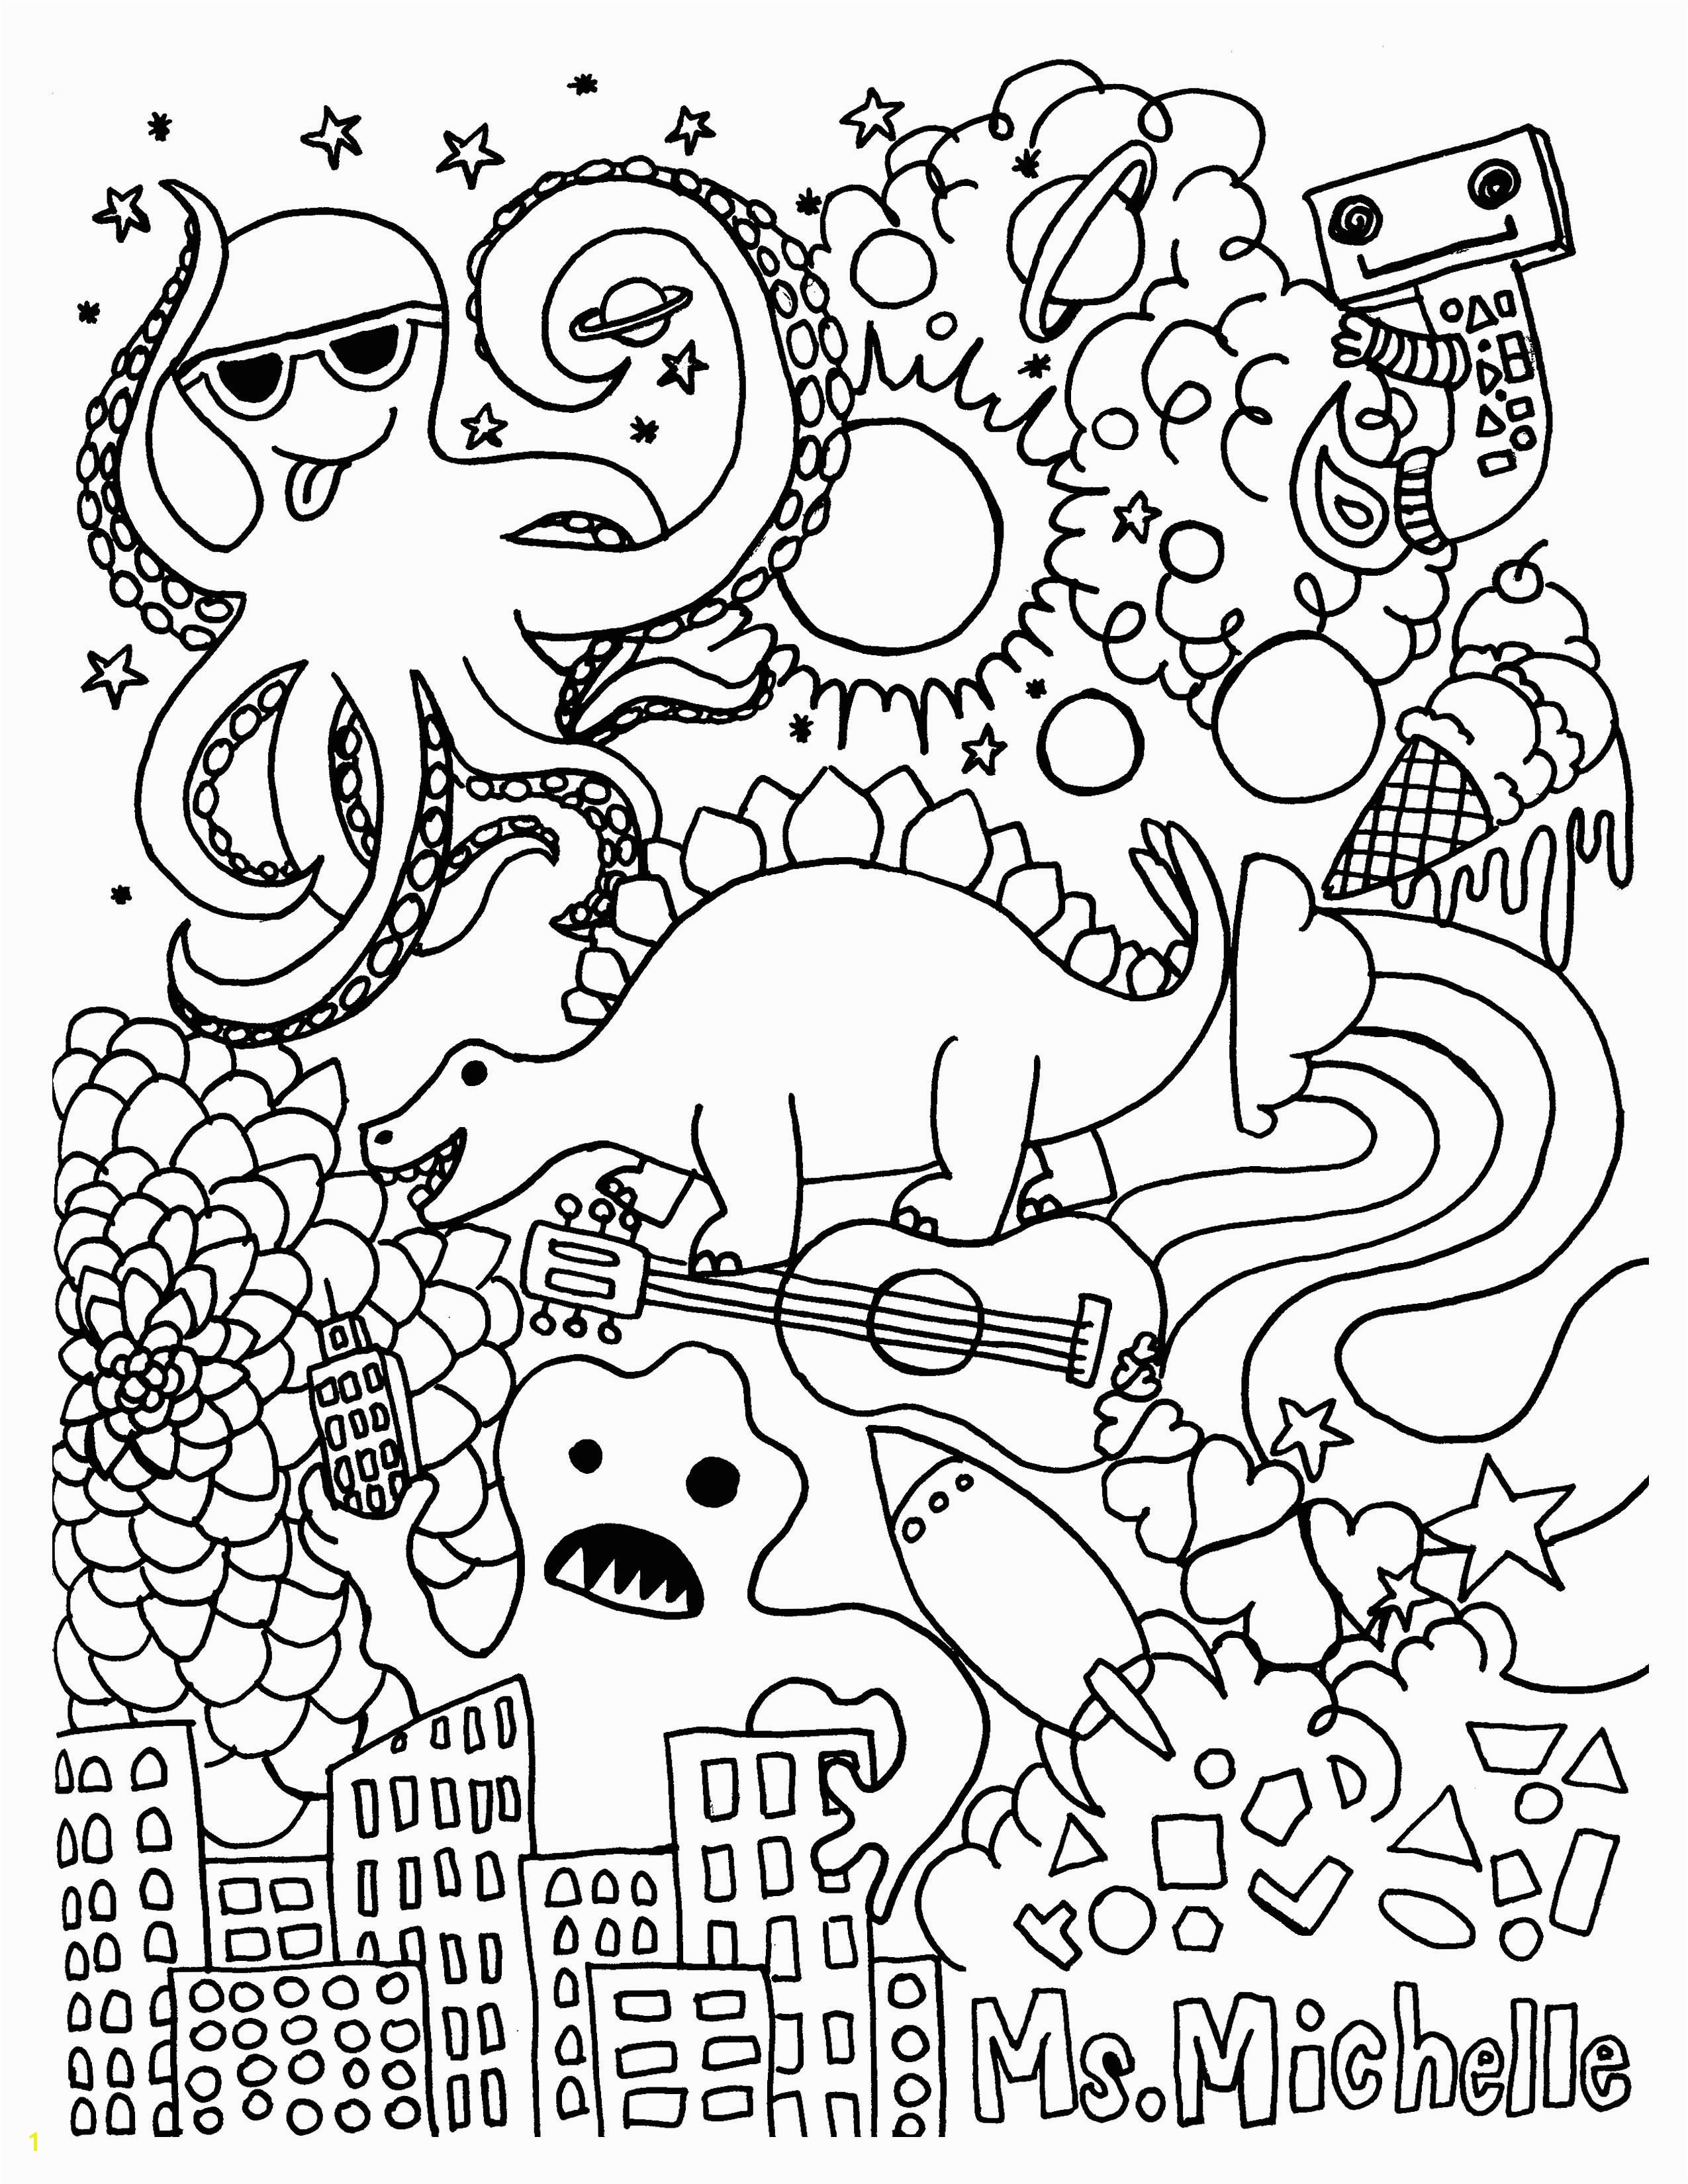 School Supplies Coloring Pages Printables 14 Awesome School Supplies Coloring Pages Printables Image